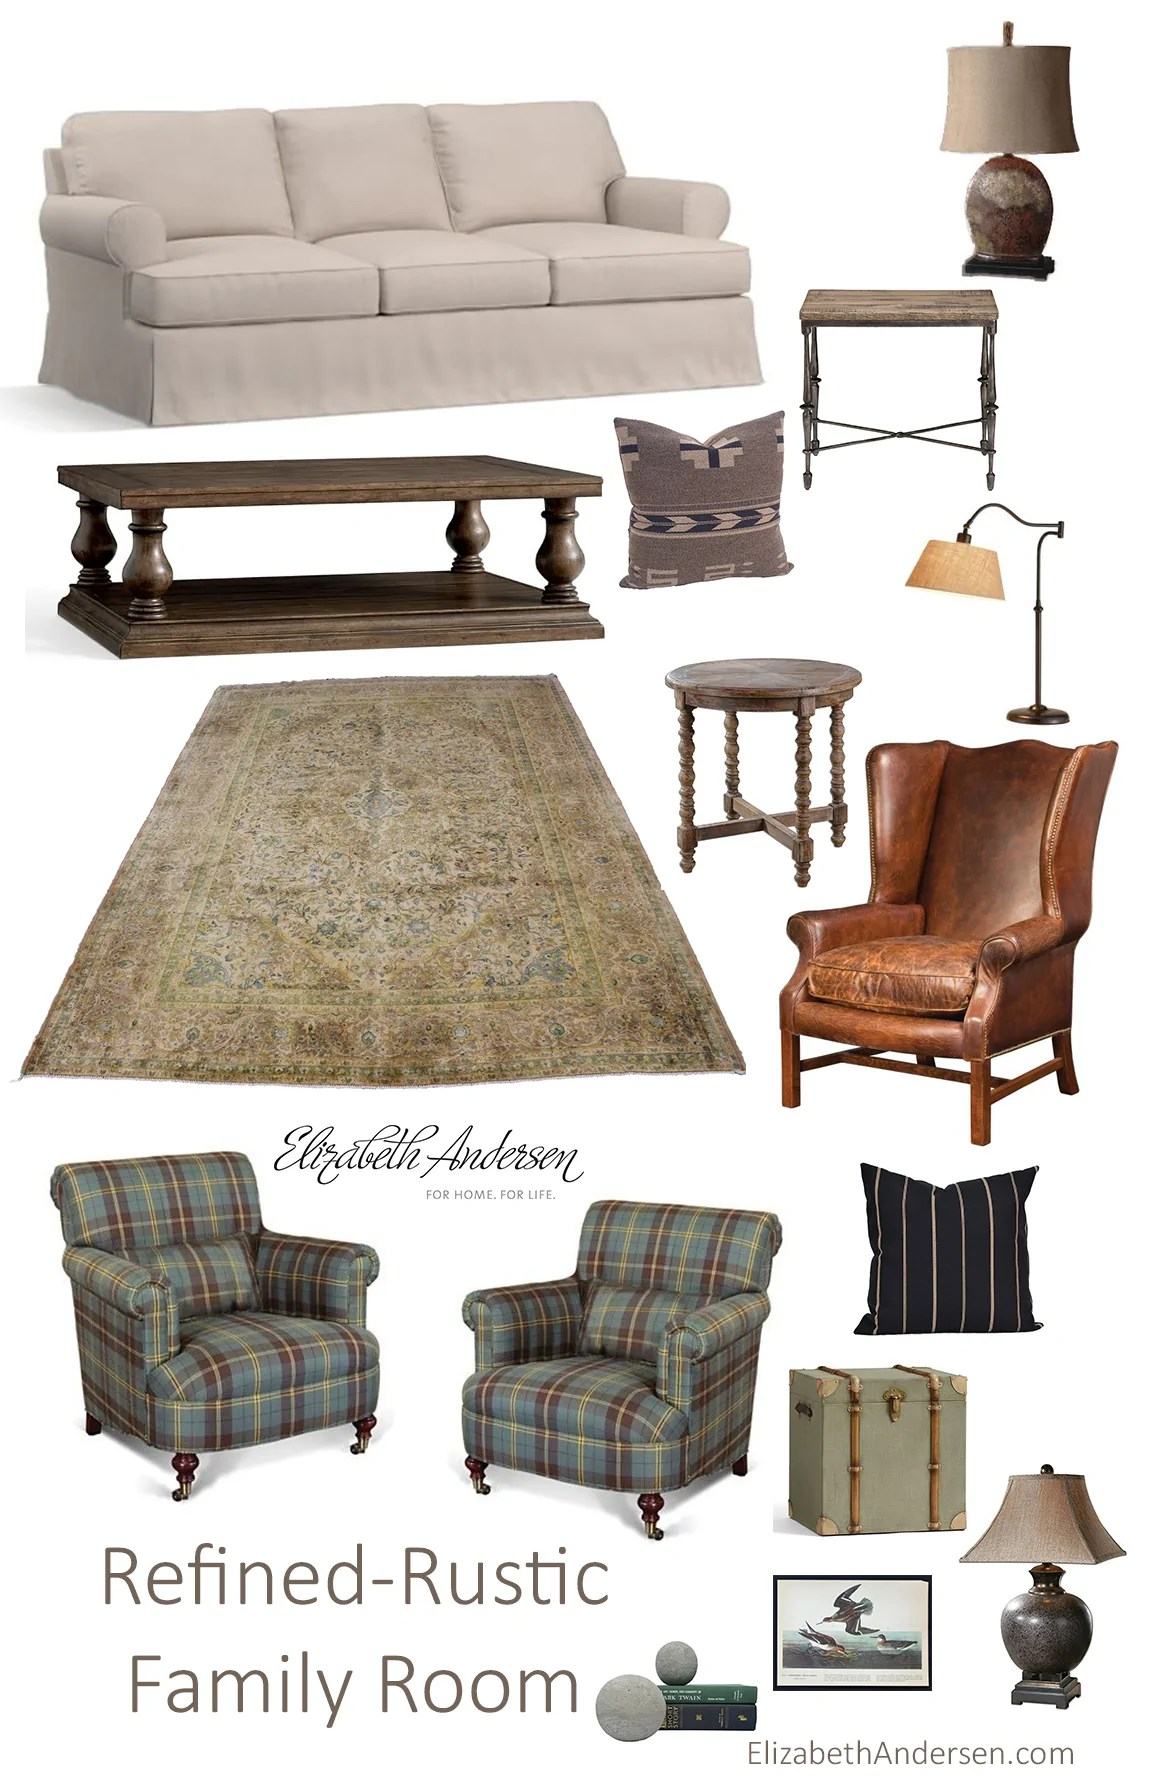 Rustic Family Room Refined Rustic Family Room Inspiration Elizabeth Andersen